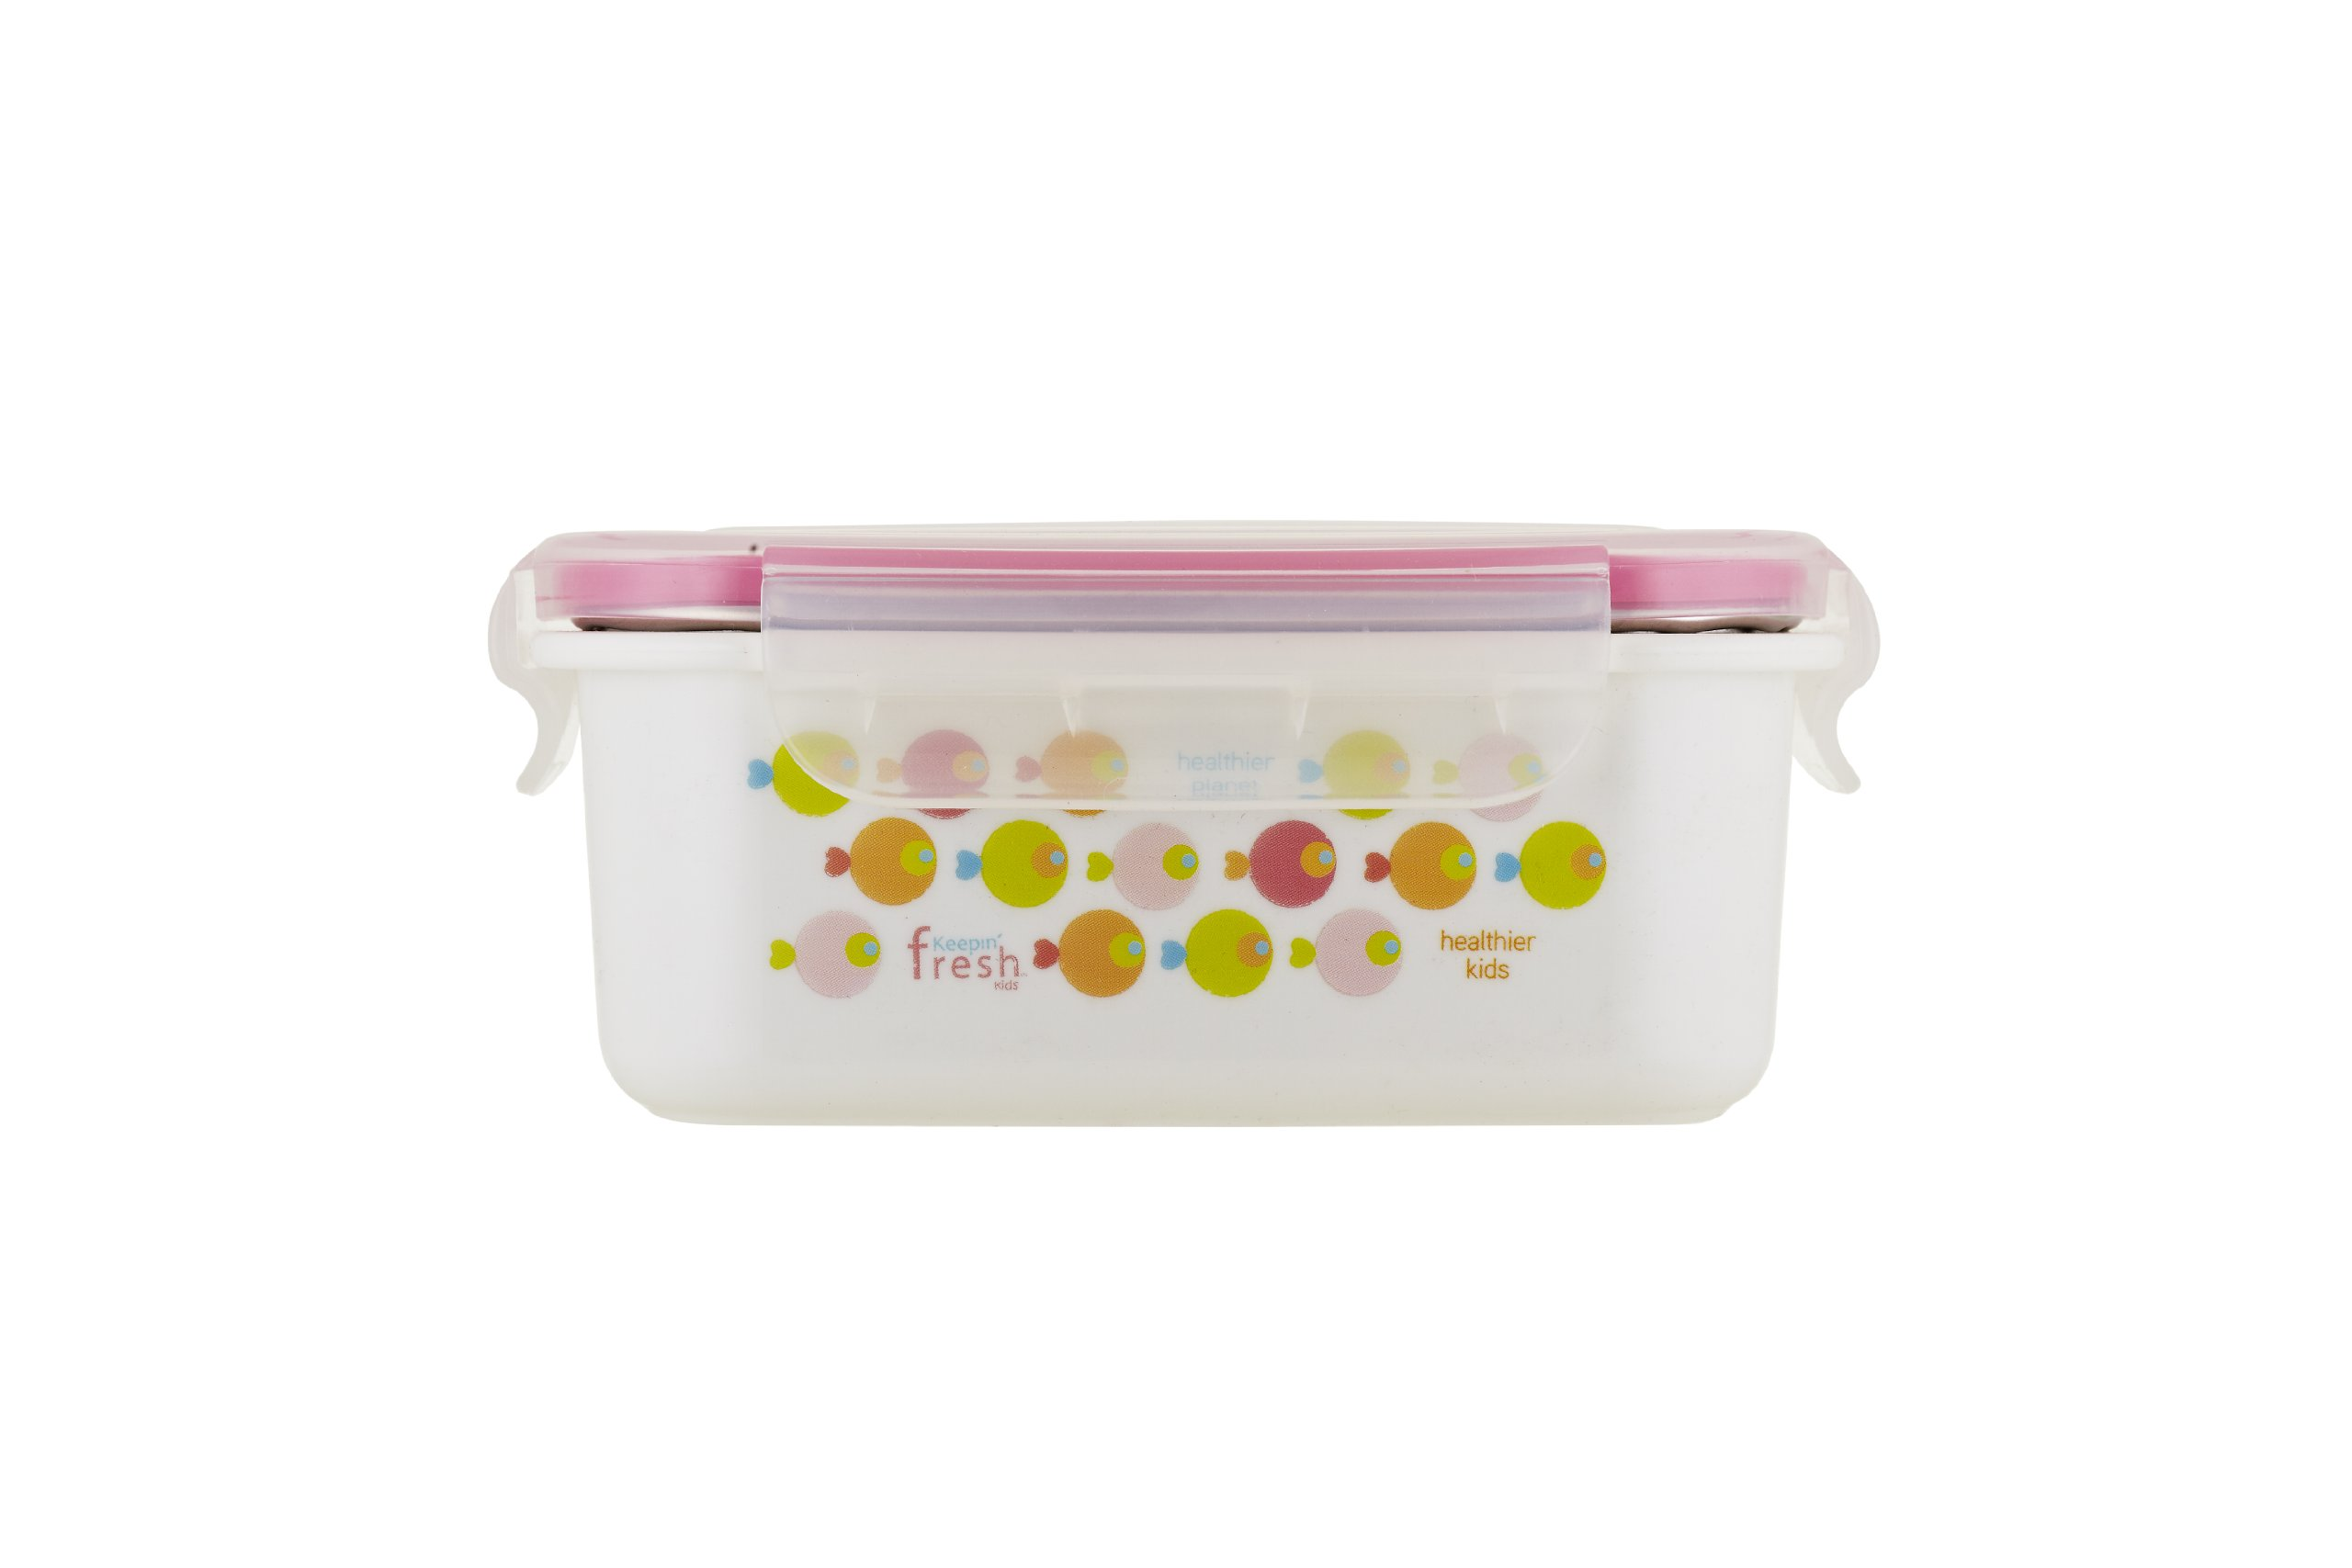 Innobaby Keepin' Fresh Stainless Bento Snack or Lunch Box with Lid for Kids and Toddlers. BPA Free. Pink Fish.